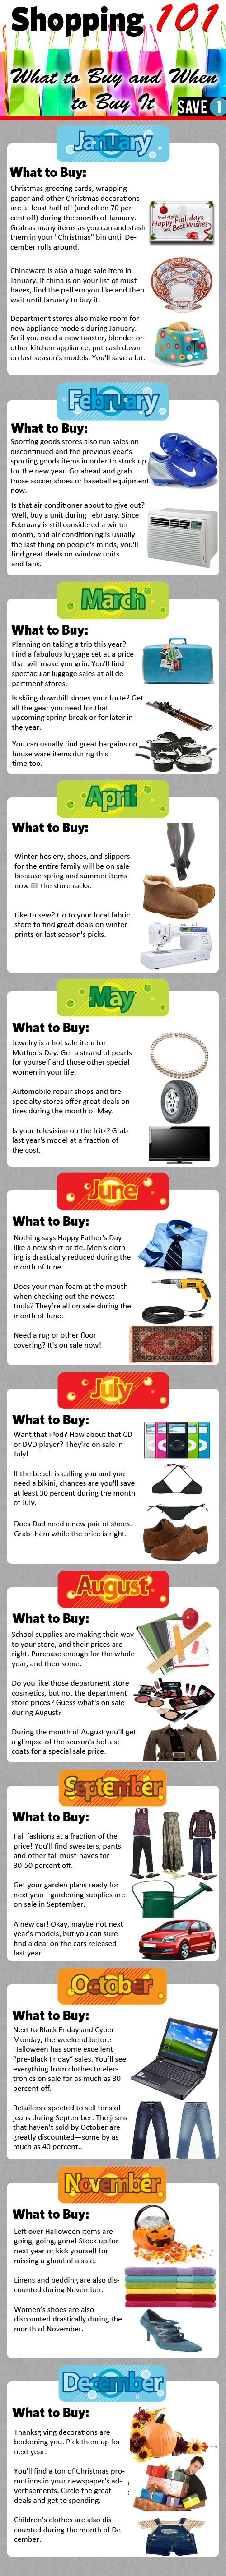 What to buy and when to buy it - month by month guide to save you money.